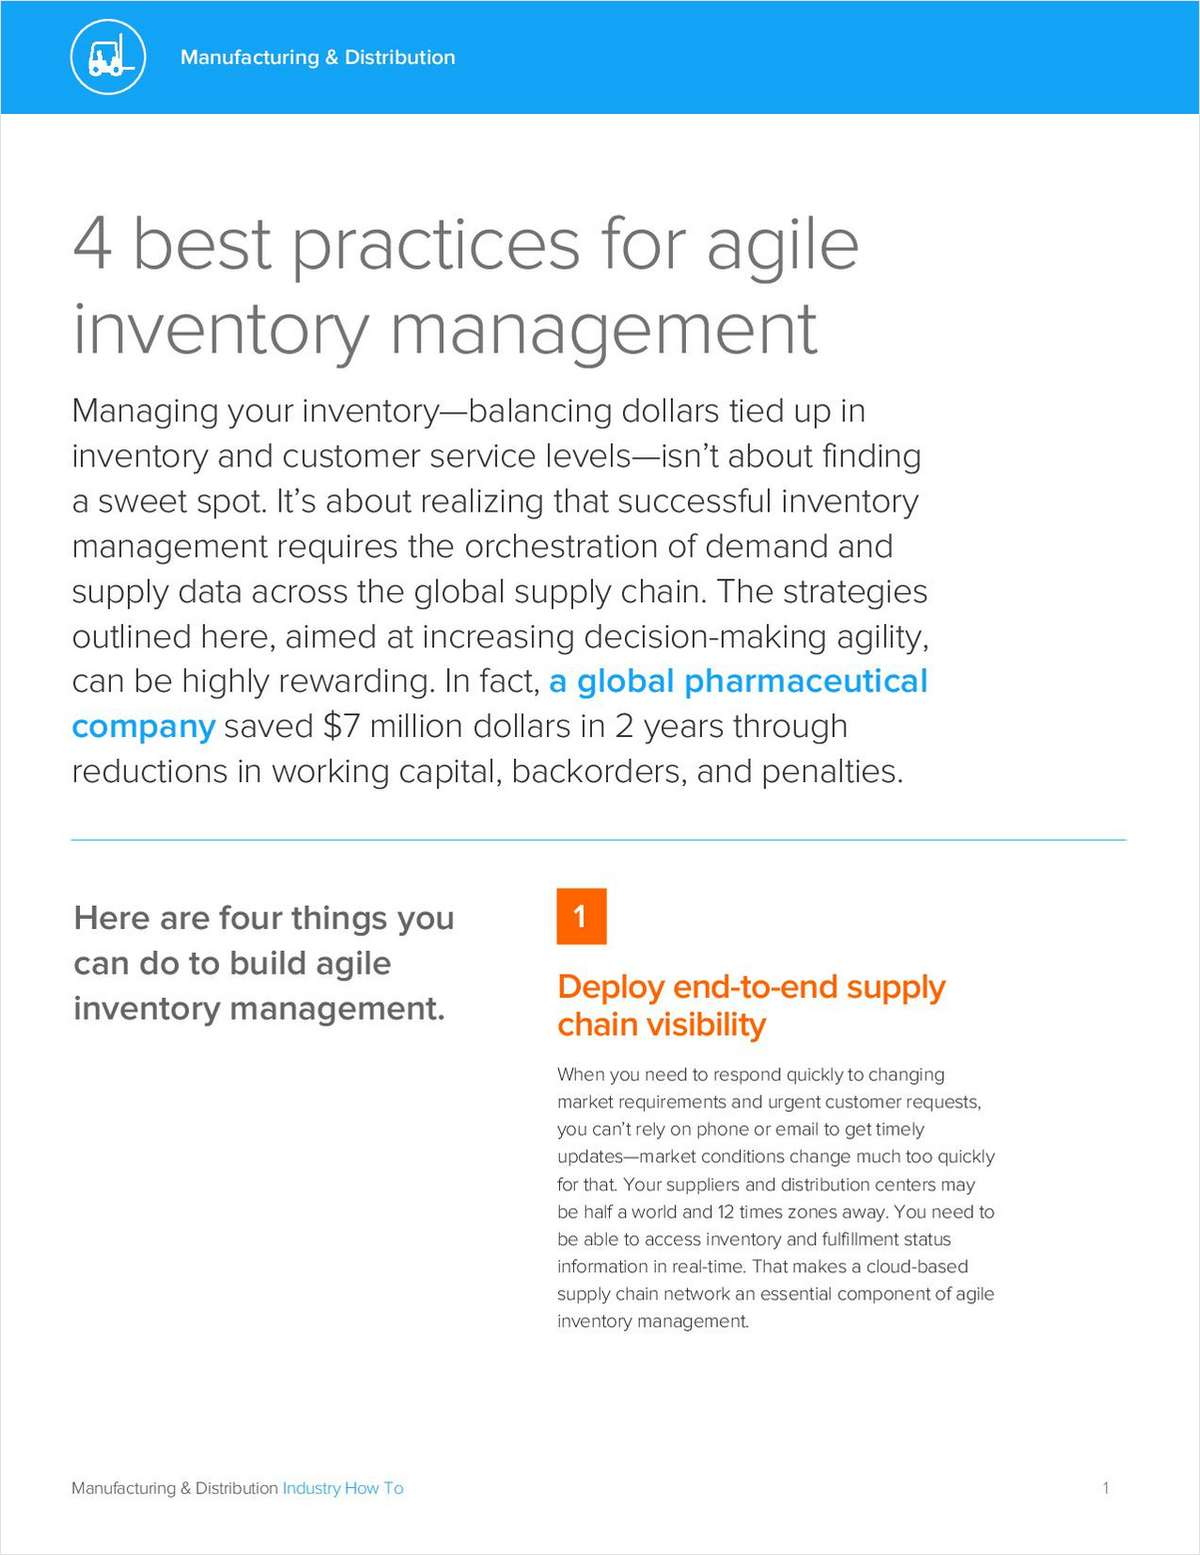 4 Best Practices for Agile Inventory Management